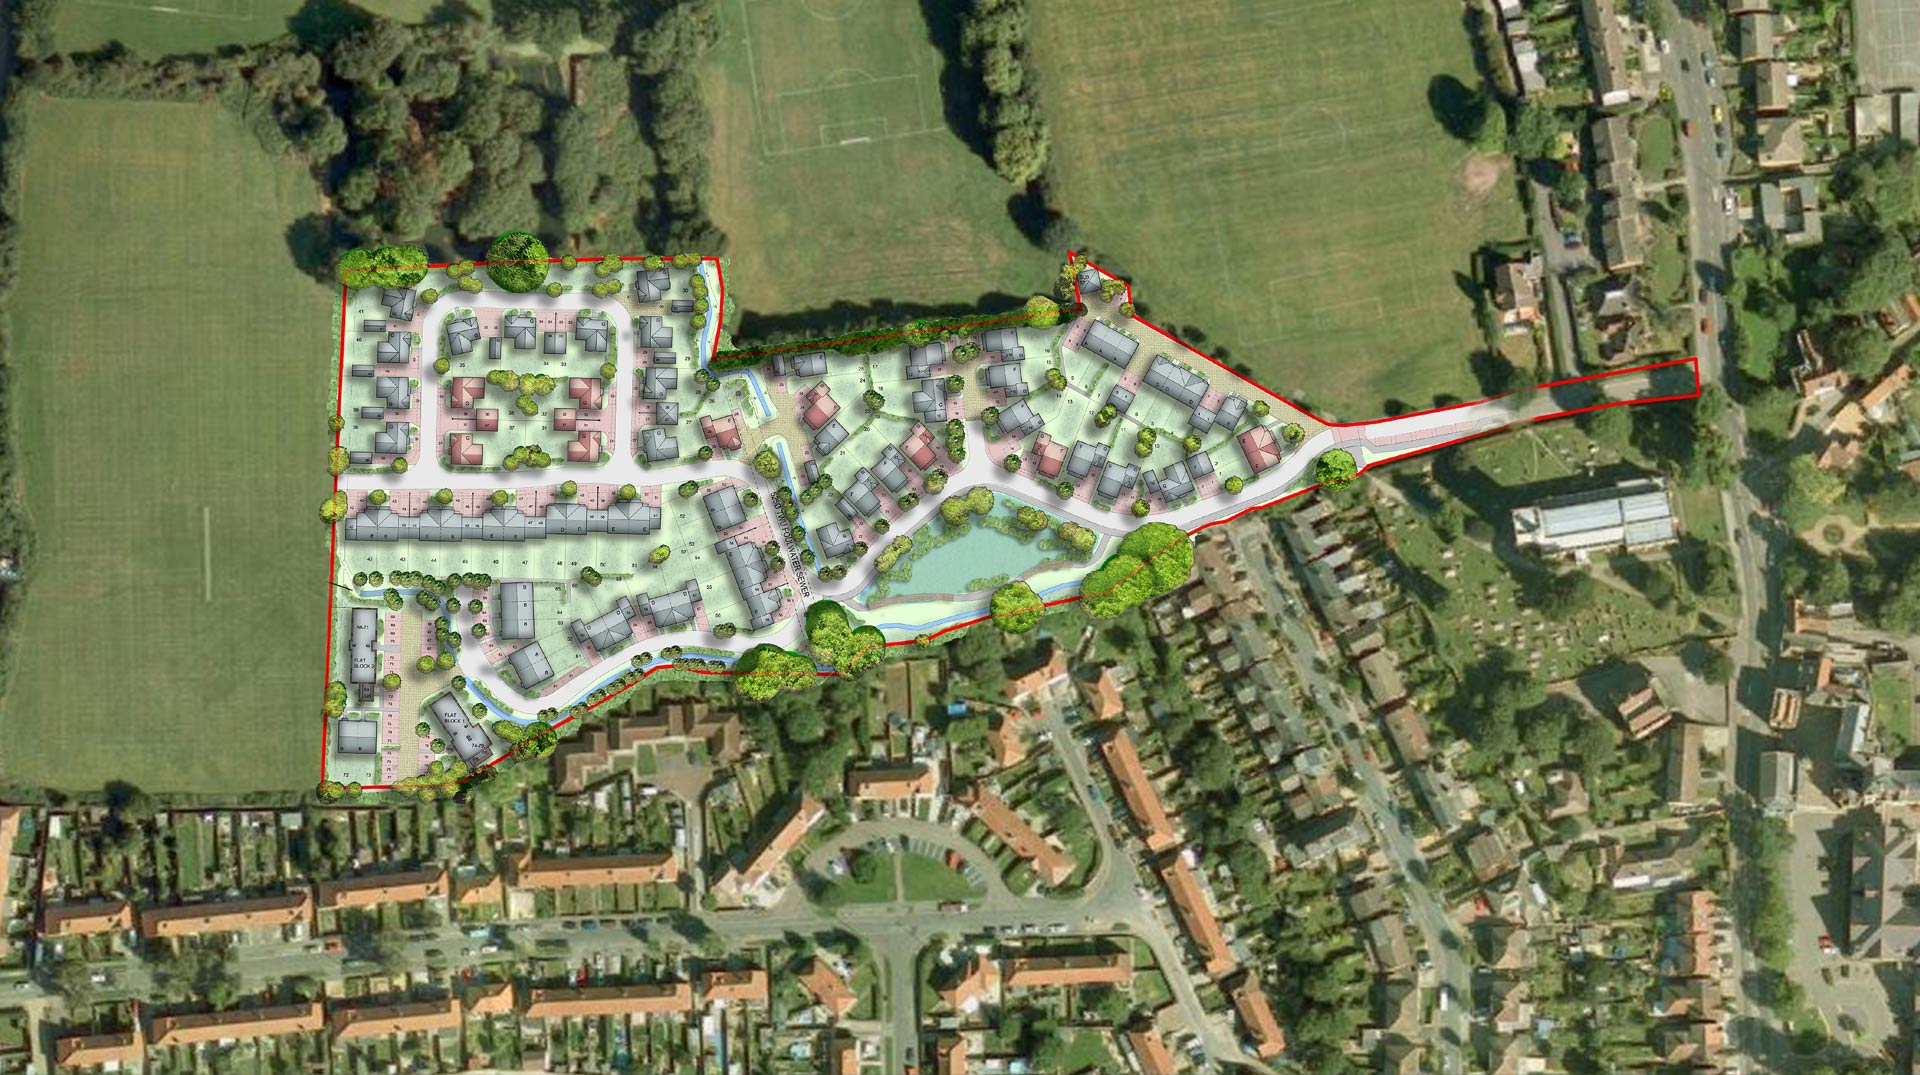 Cheshunt site plan aerial view with overlay